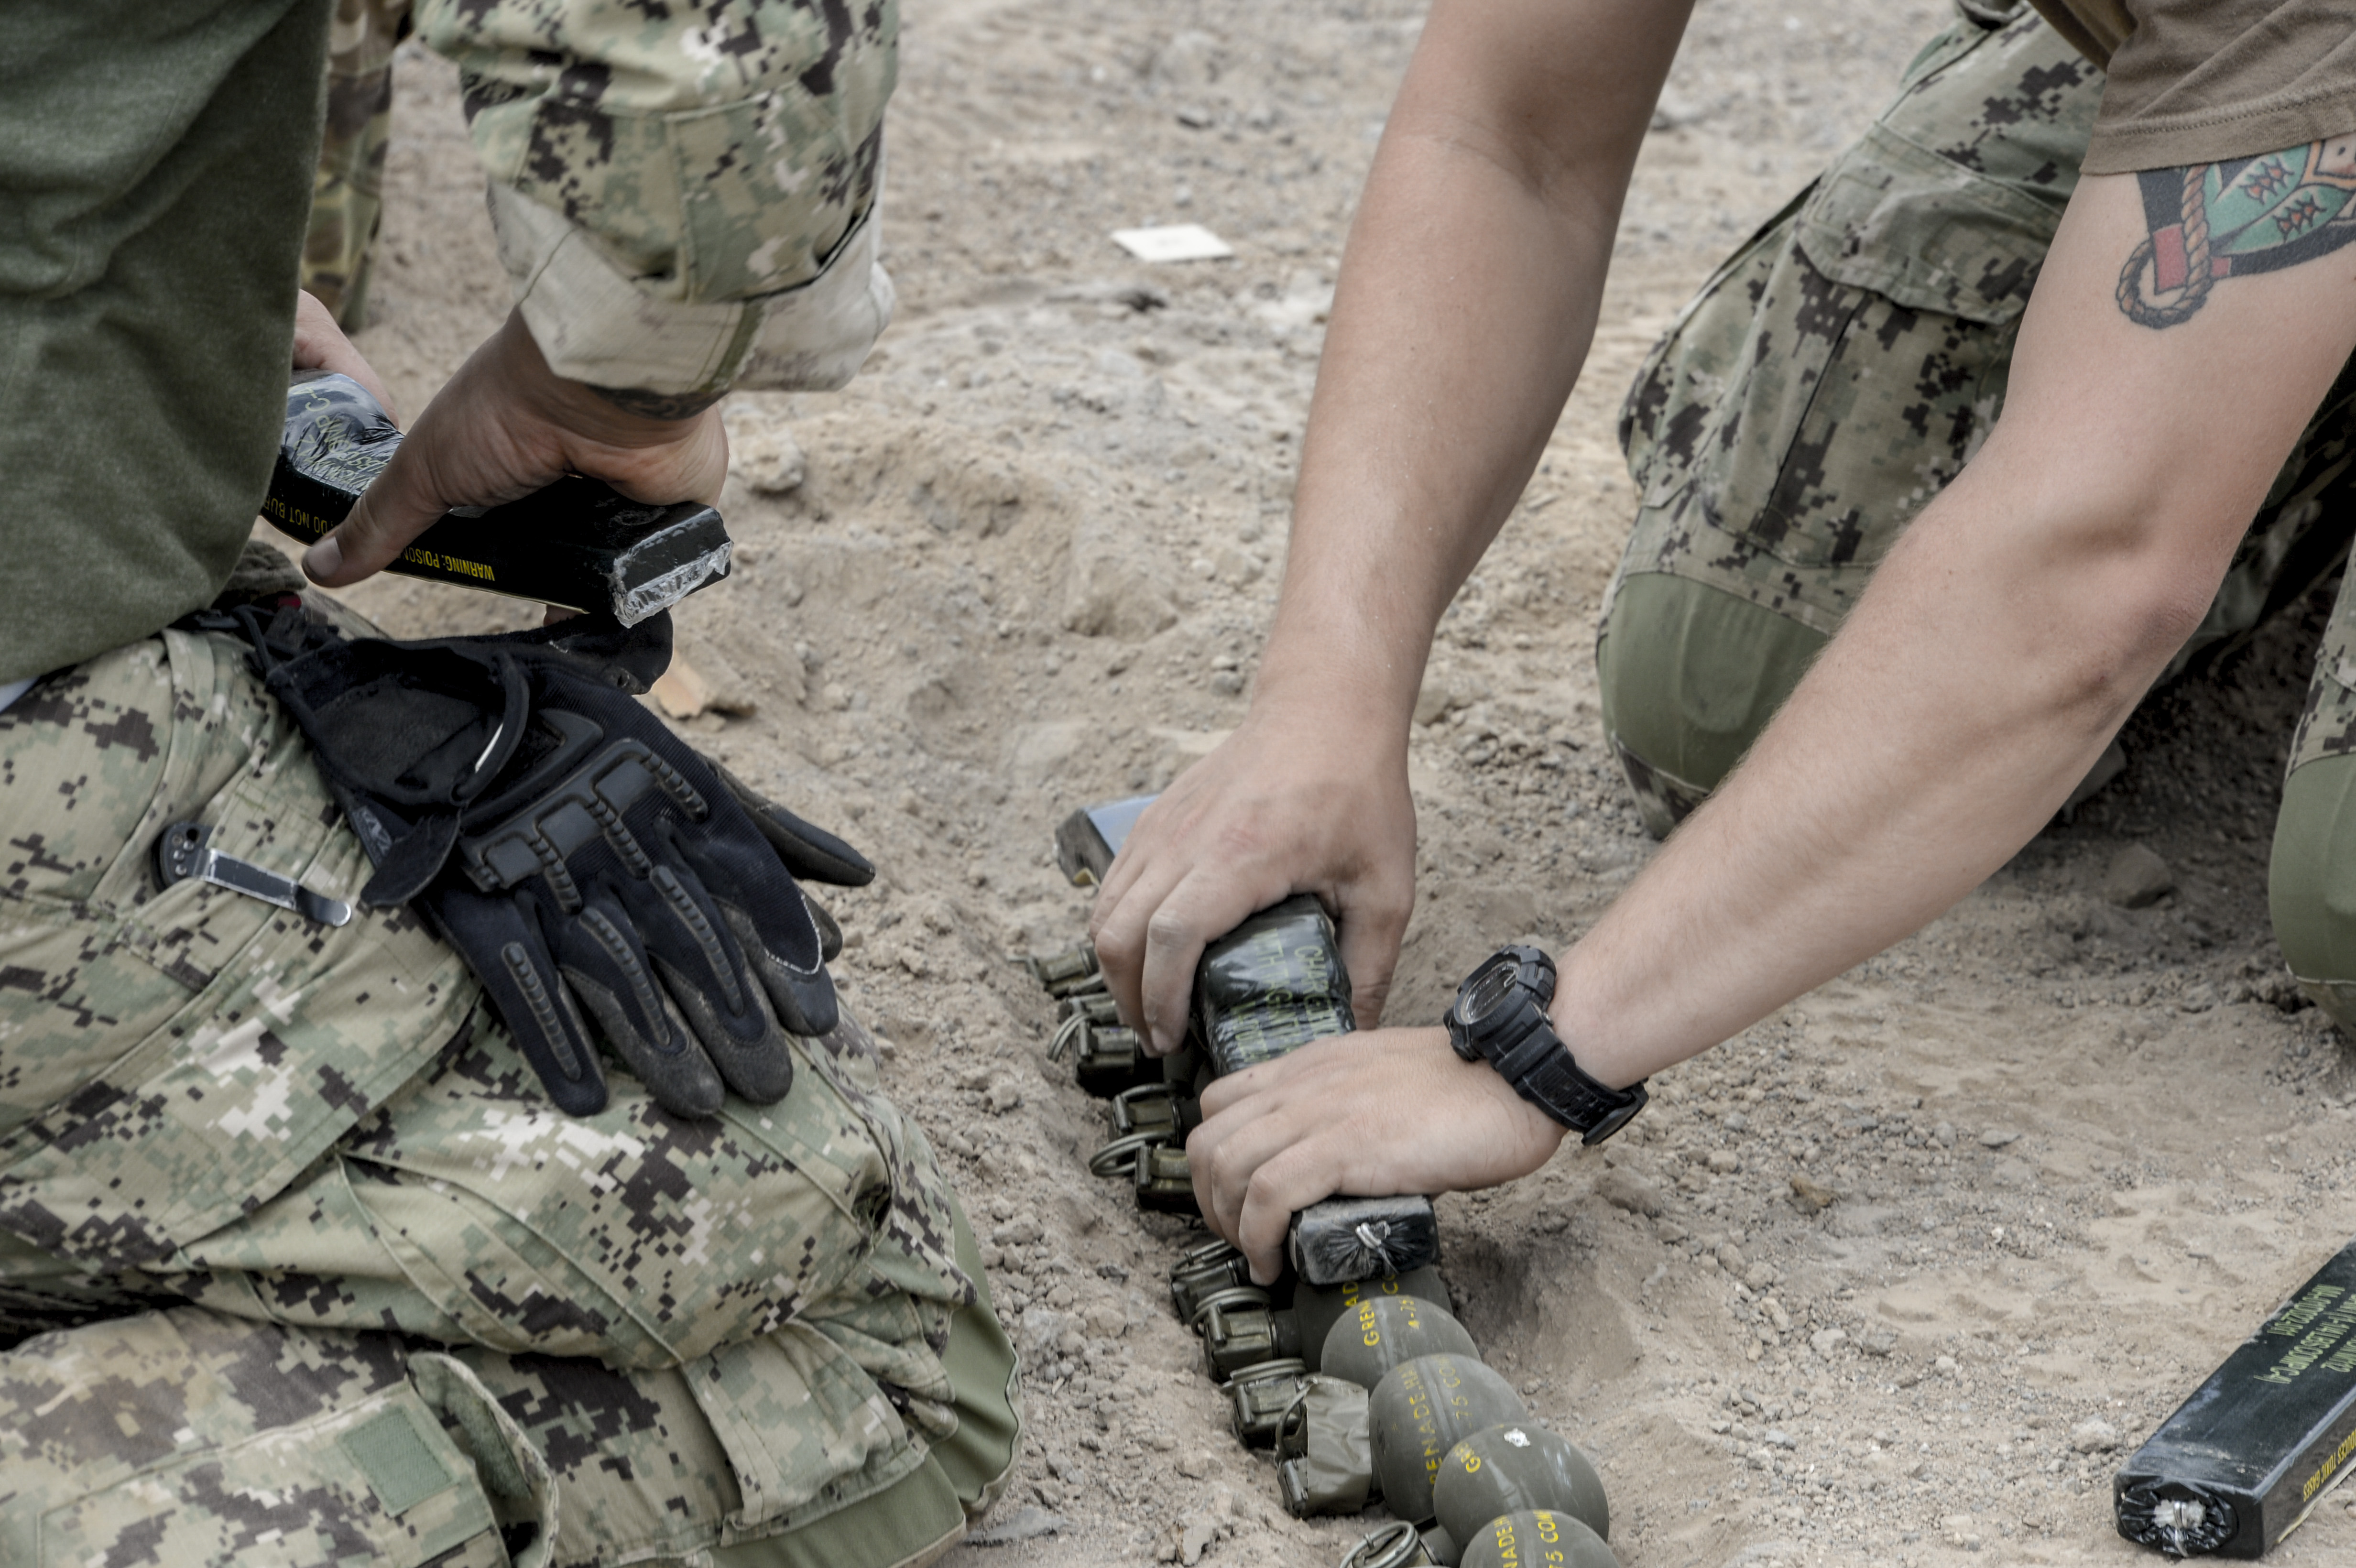 U.S. Navy Sailors of Combined Joint Task Force Horn of Africa Explosive Ordnance Disposal (EOD) members, use C-4 explosives on defective hand-grenades to dispose of them safely and properly at Arta Plage, Djibouti, Jan. 30, 2017. EOD teams disarm active improvised explosive devices in deployed areas around the globe. (U.S. Air National Guard photo by Staff Sgt. Christian Jadot)